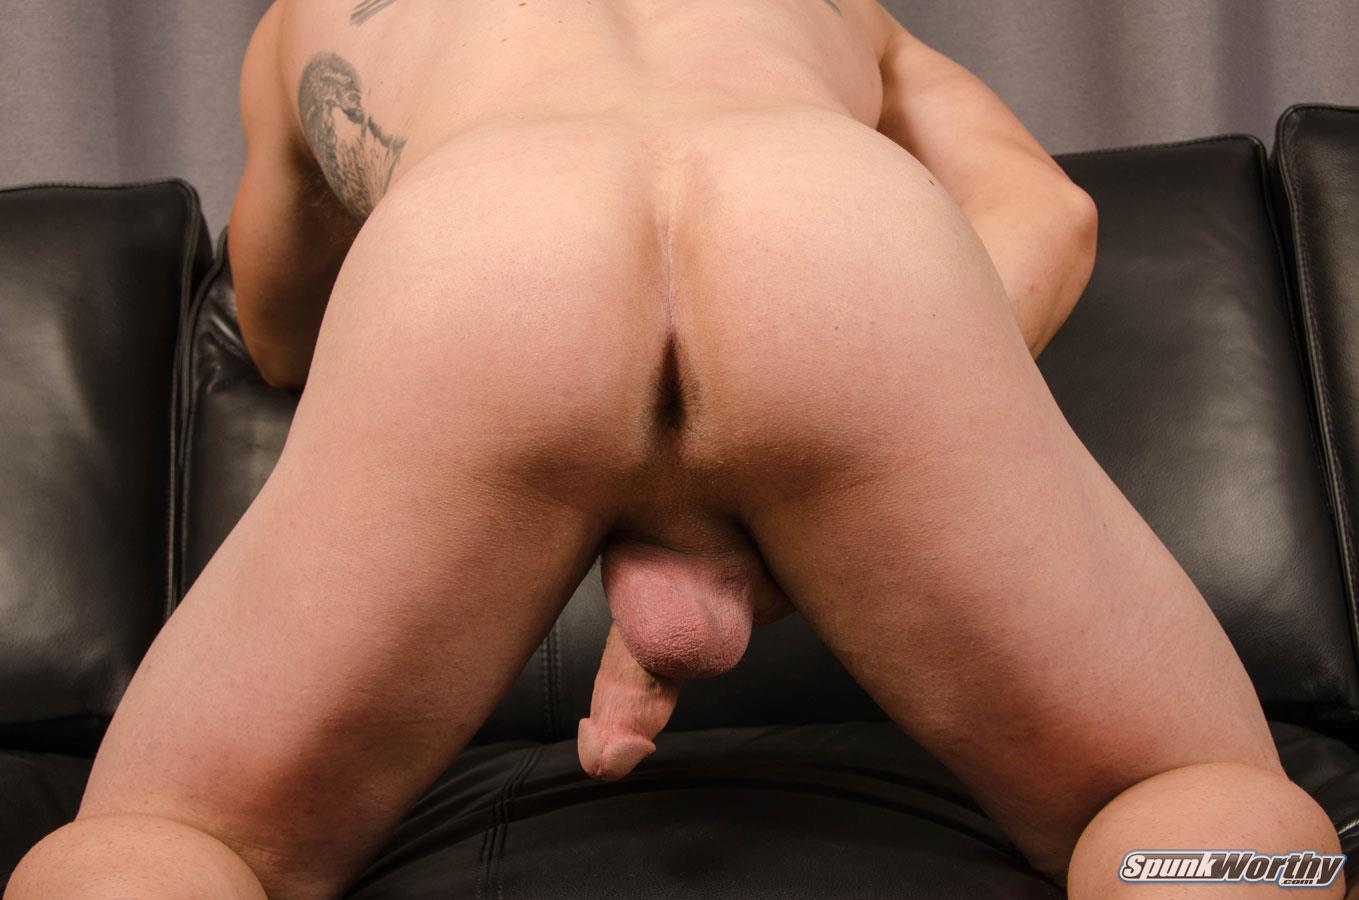 SpunkWorthy Avery Straight Army Soldier Jerking Off Big Cock Amateur Gay Porn 13